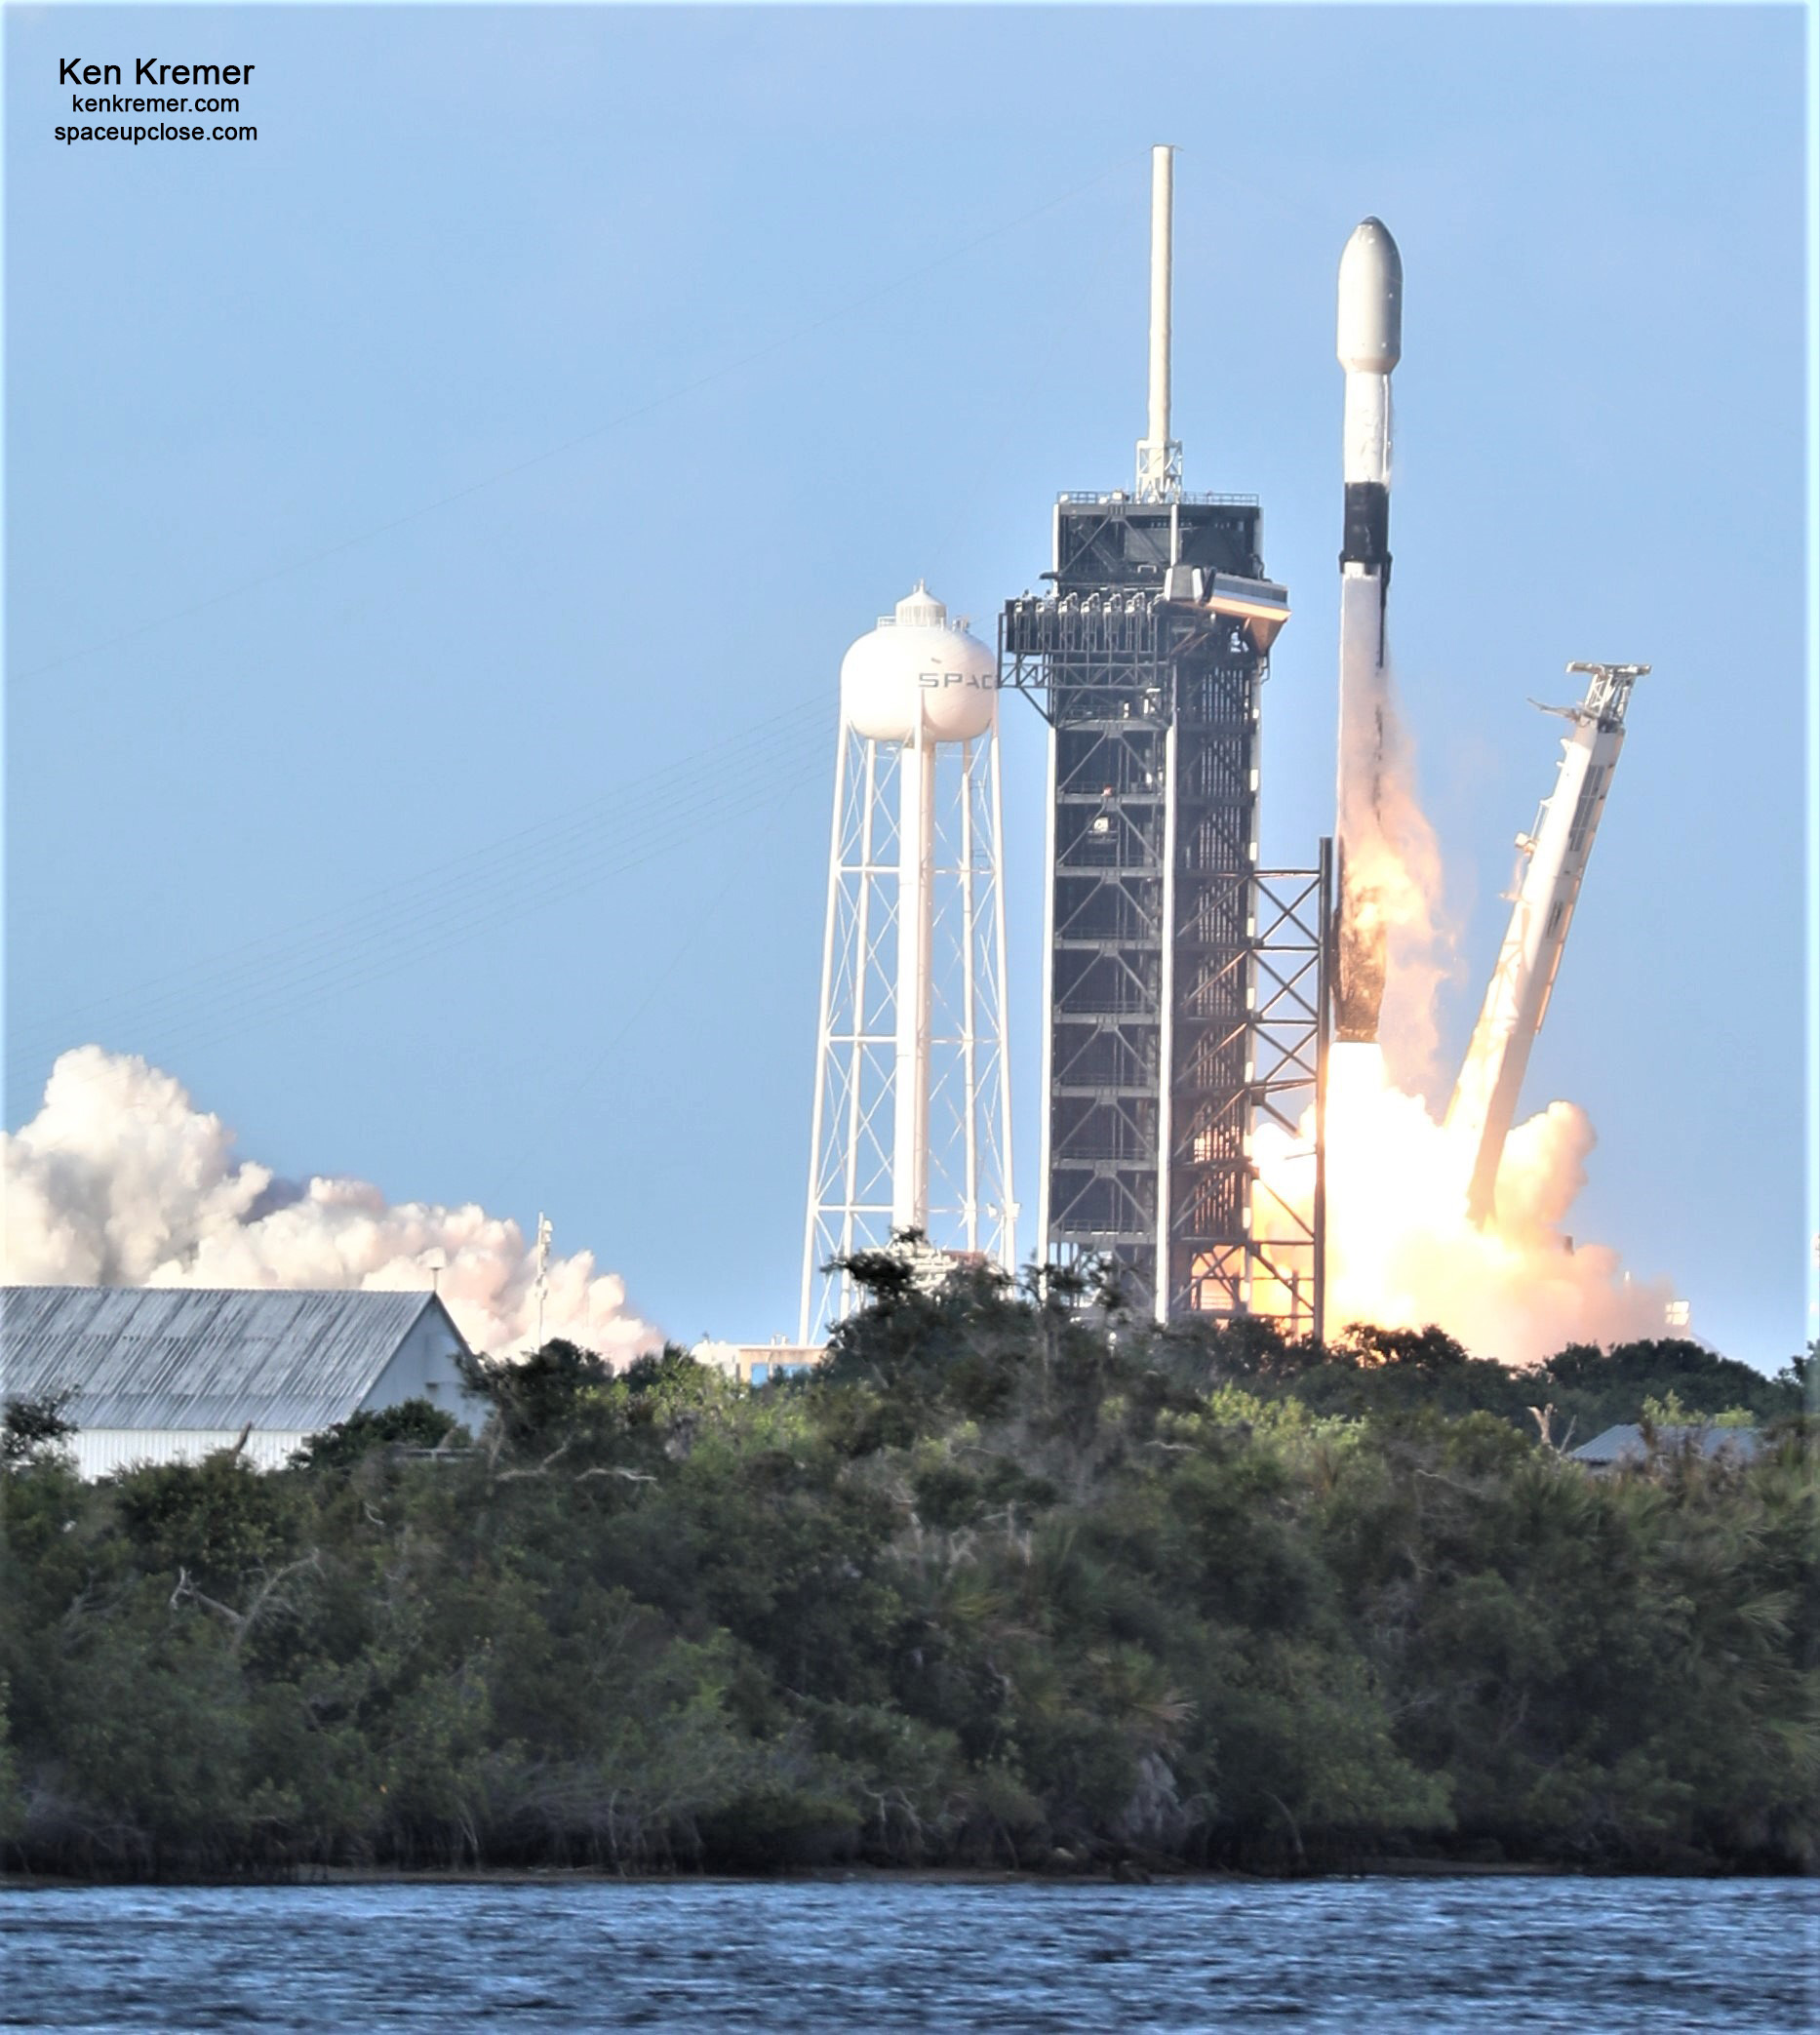 Beautiful Starlink Blastoff Saturday Evening from KSC as Aggressive SpaceX Launches 5th Falcon 9 in 3 Weeks: Photos